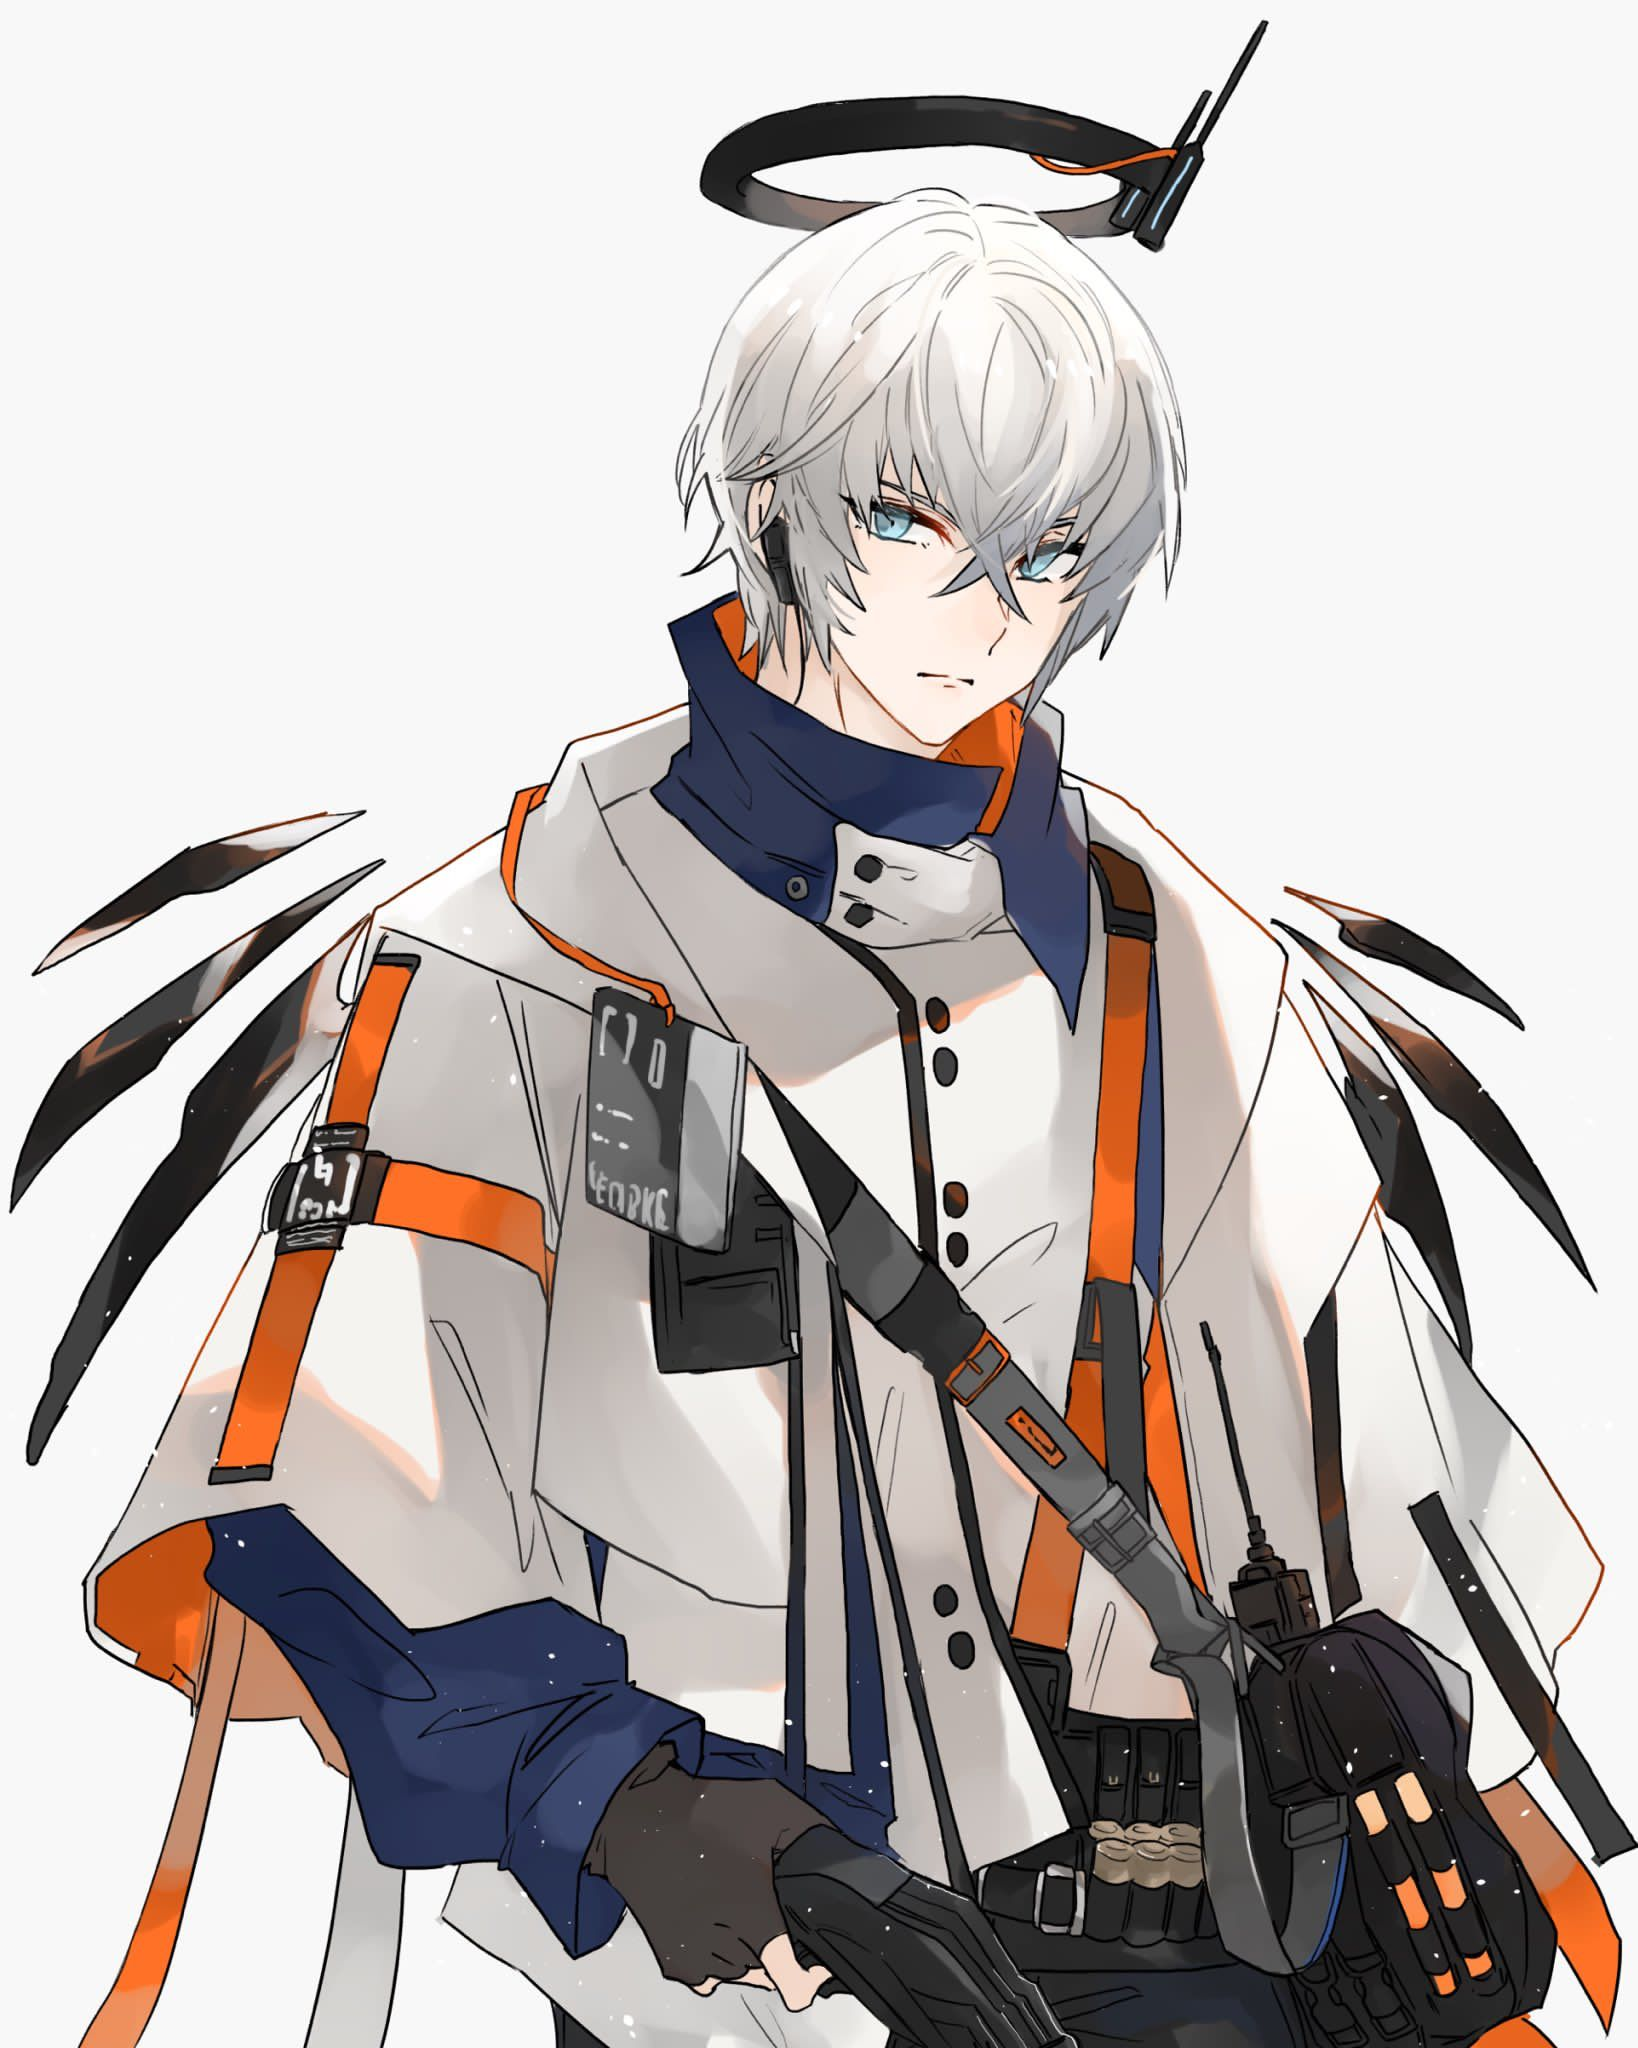 Pin By Mydream Denmon On Arknigts In 2020 Anime Wolf Girl Anime Character Design Anime Boy